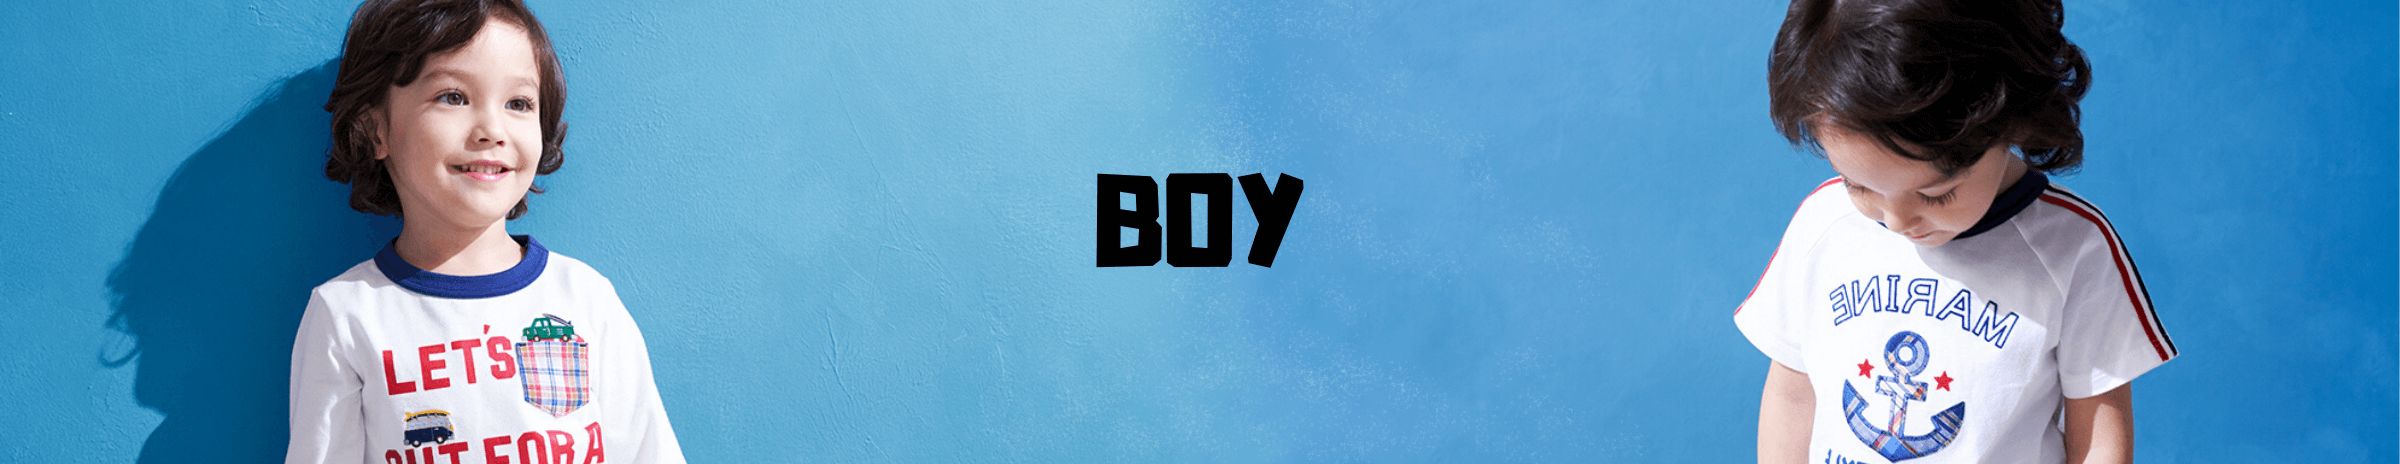 WILLHARRY|boy-clothes